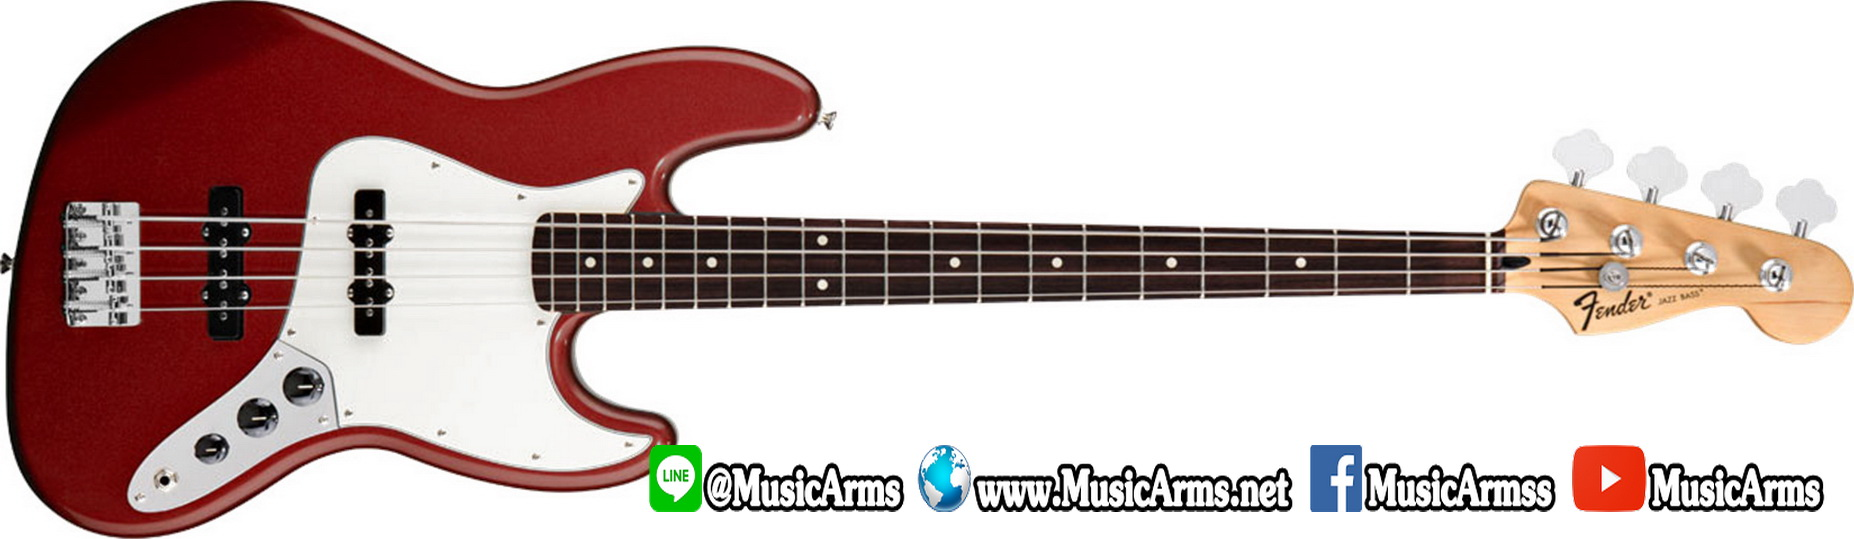 fenderjbass01-candy apple red